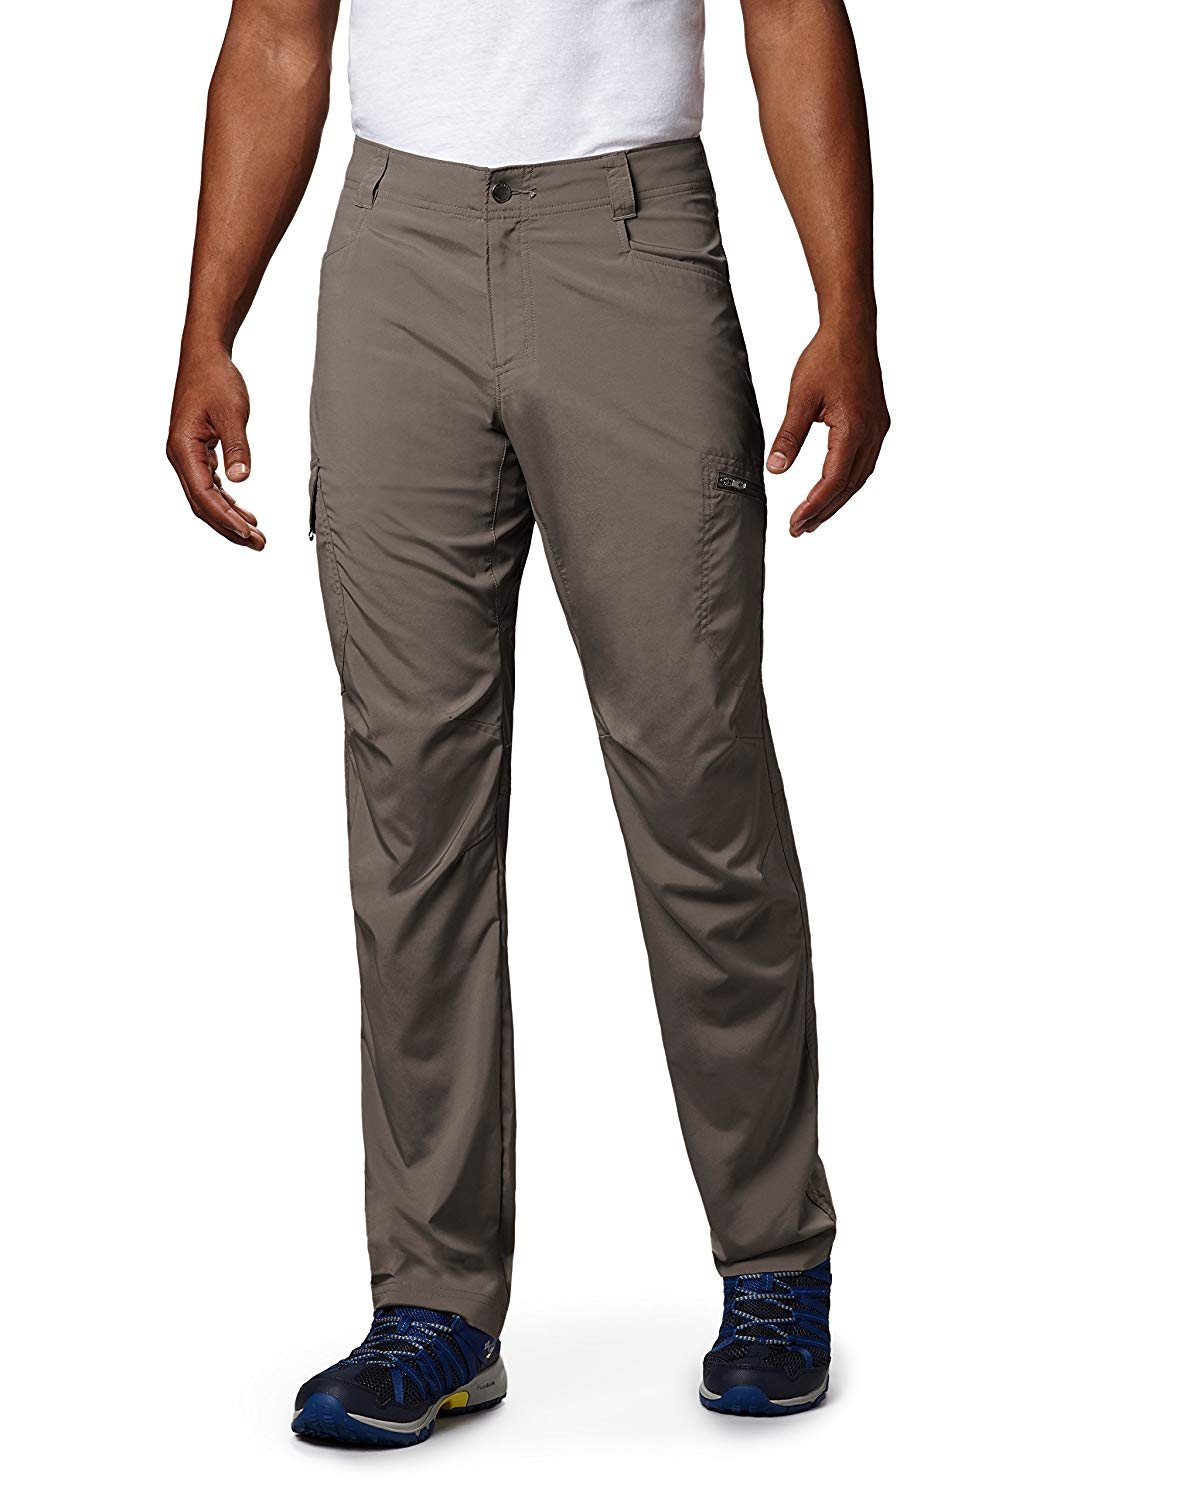 best hiking pants for men - Columbia